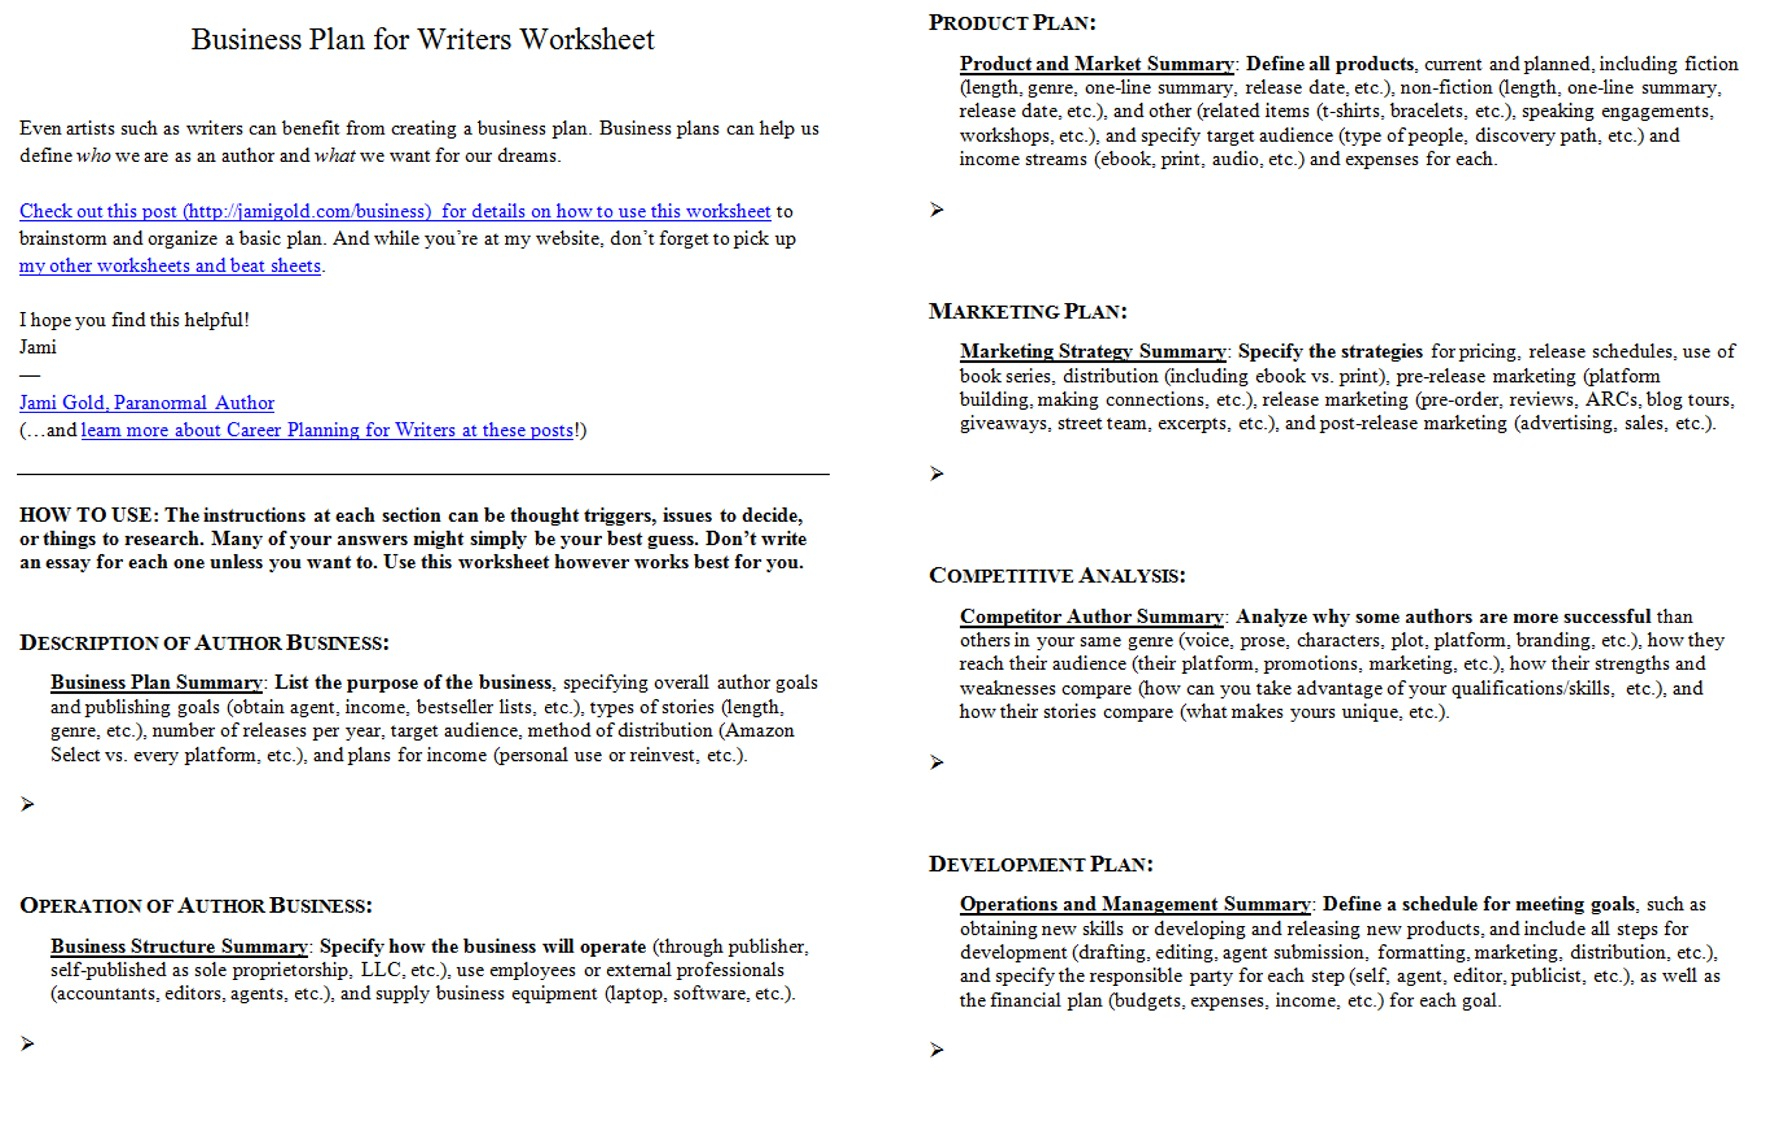 Proatmealus  Fascinating Worksheets For Writers  Jami Gold Paranormal Author With Extraordinary Screen Shot Of Both Pages Of The Business Plan For Writers Worksheet With Delightful Worksheets For Th Grade English Also Prime Numbers   Worksheet In Addition Physical Changes Of Matter Worksheets And Present And Past Tense Worksheets Pdf As Well As Becoming Human Worksheet Additionally Section  The Periodic Table Worksheet Answers From Jamigoldcom With Proatmealus  Extraordinary Worksheets For Writers  Jami Gold Paranormal Author With Delightful Screen Shot Of Both Pages Of The Business Plan For Writers Worksheet And Fascinating Worksheets For Th Grade English Also Prime Numbers   Worksheet In Addition Physical Changes Of Matter Worksheets From Jamigoldcom